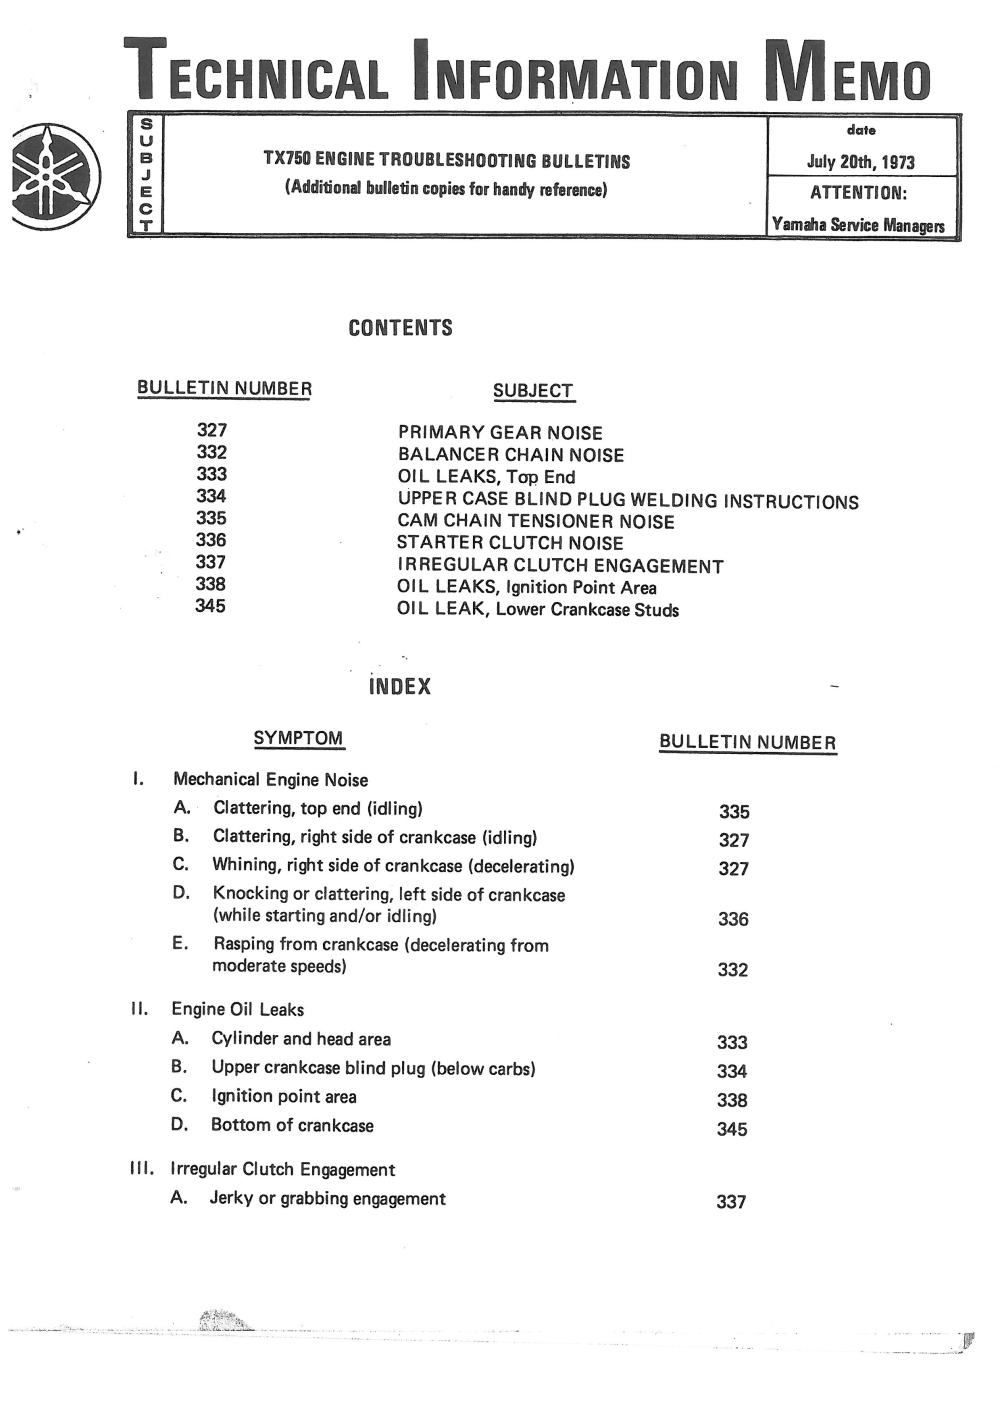 Xs650 Tx750 Service And Parts News Thexscafe Tsubaki Wiring Diagram Tech Info Memo 20 Jul 1973